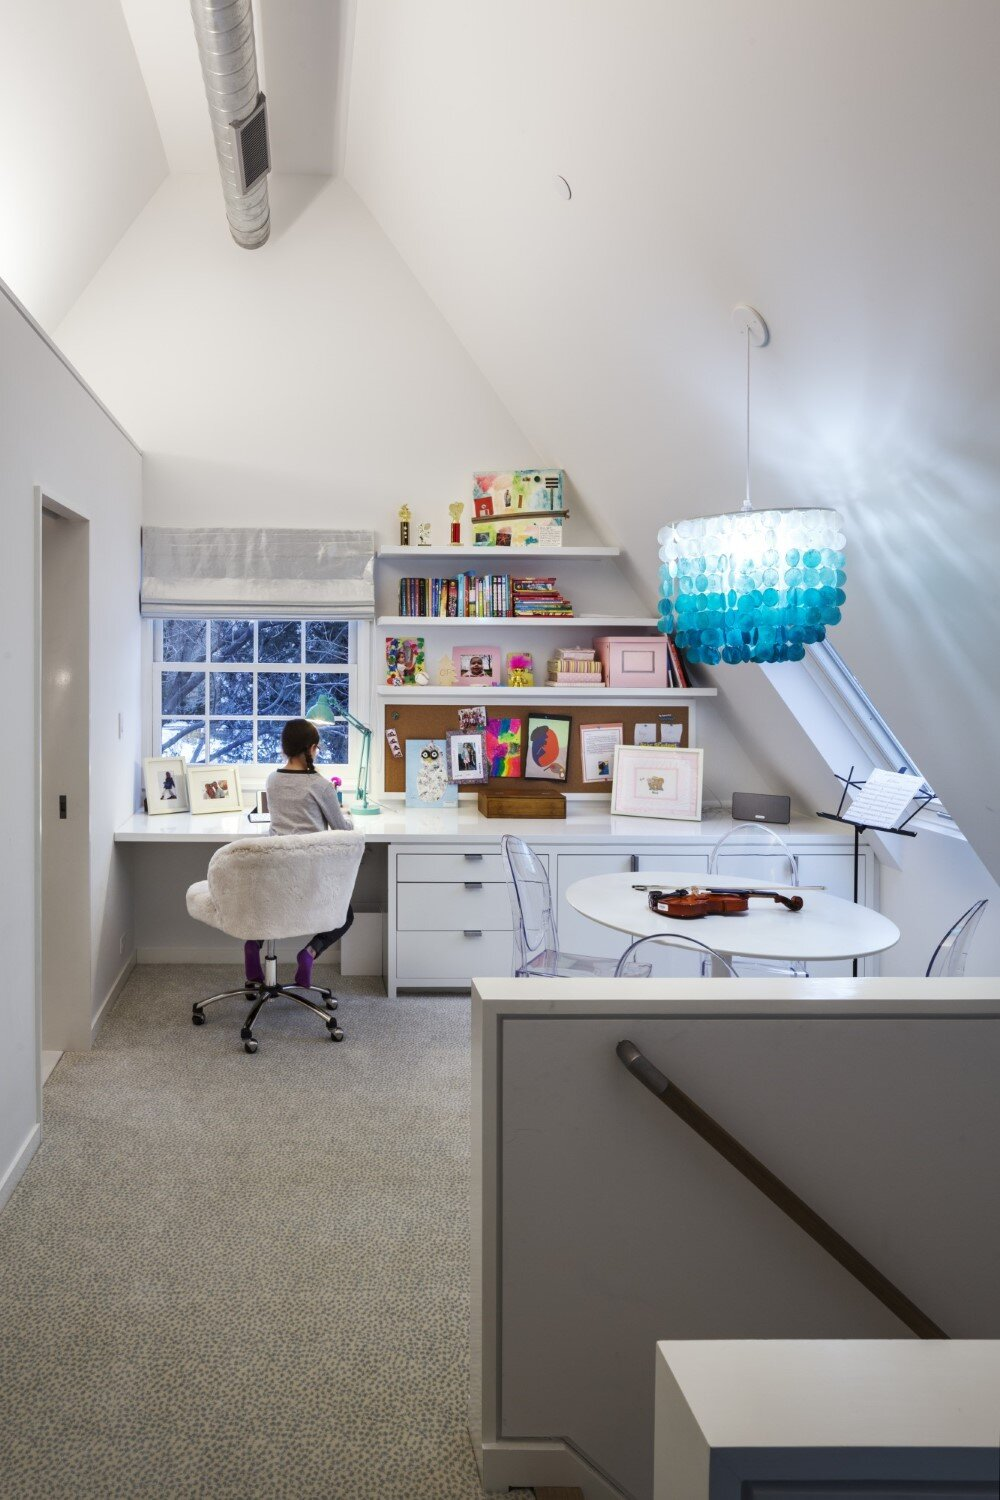 Tudor house restoration and extension project developed by Moore & Partners Architects JOEB - HomeWorldDesign (4) (Custom)